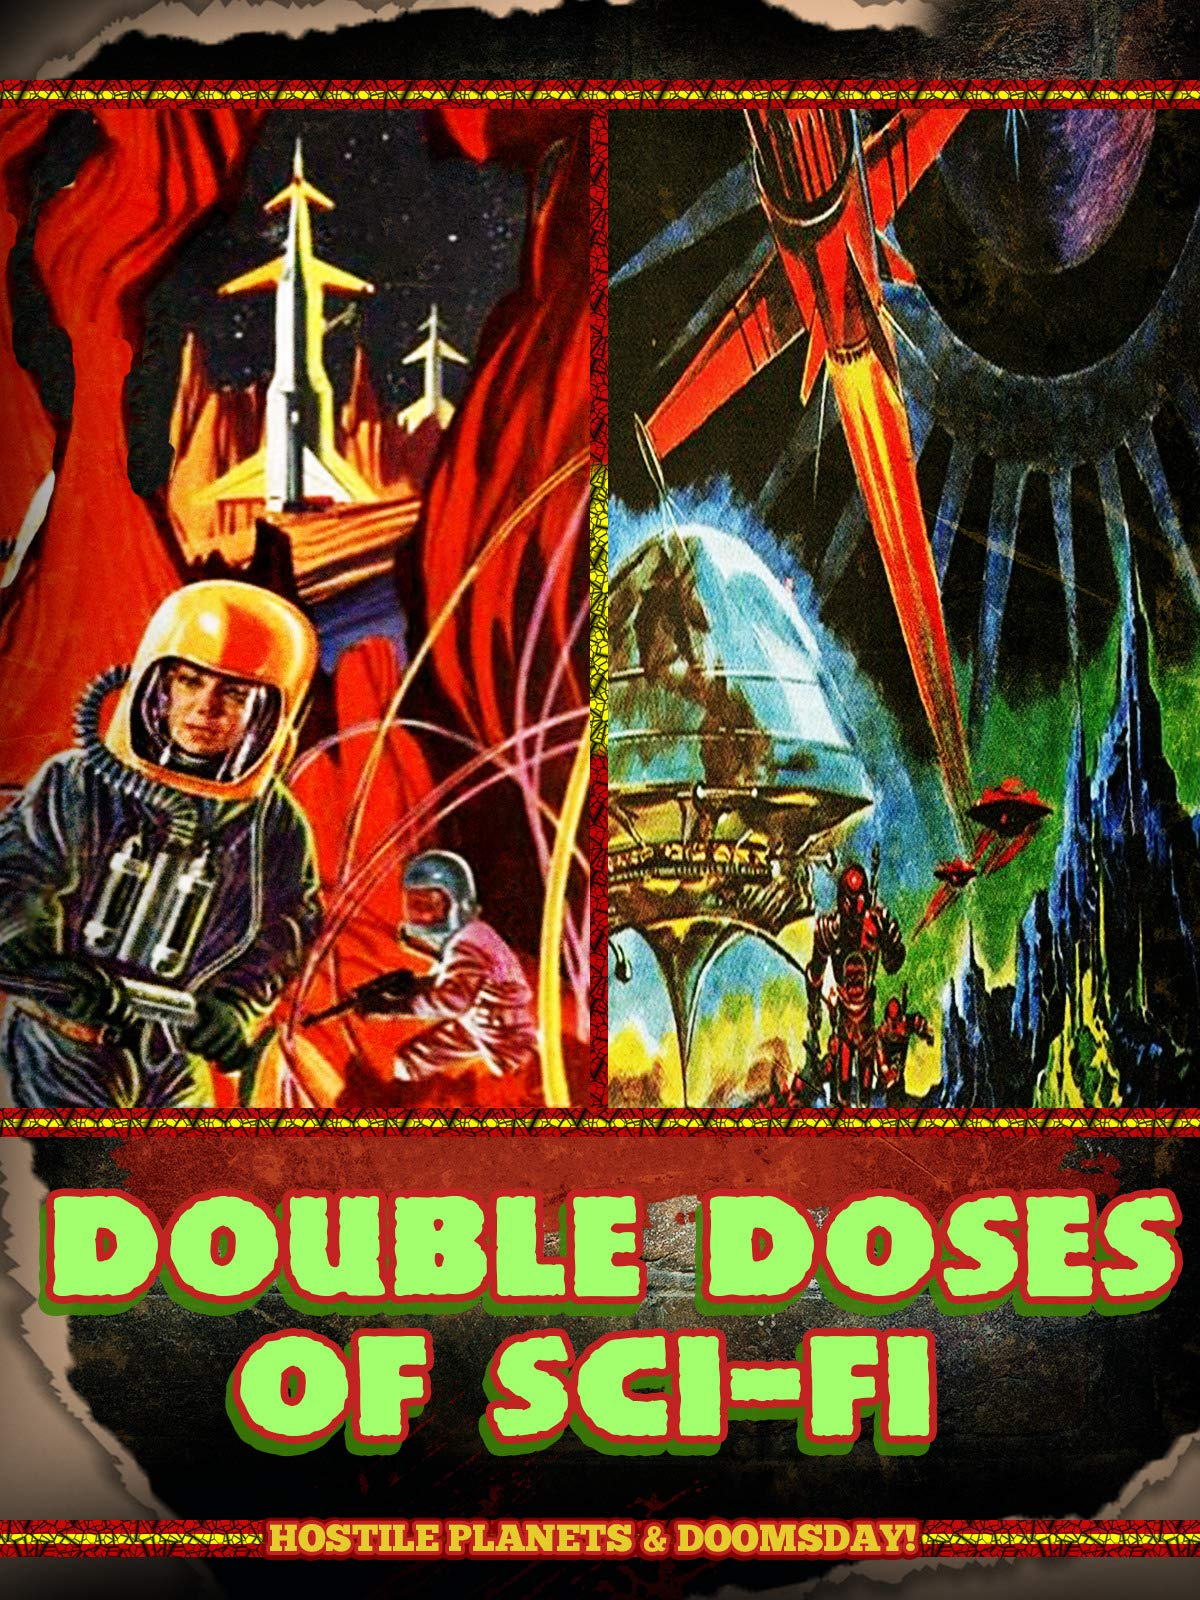 Double Doses of Sci-Fi: Hostile Planets & Doomsday!